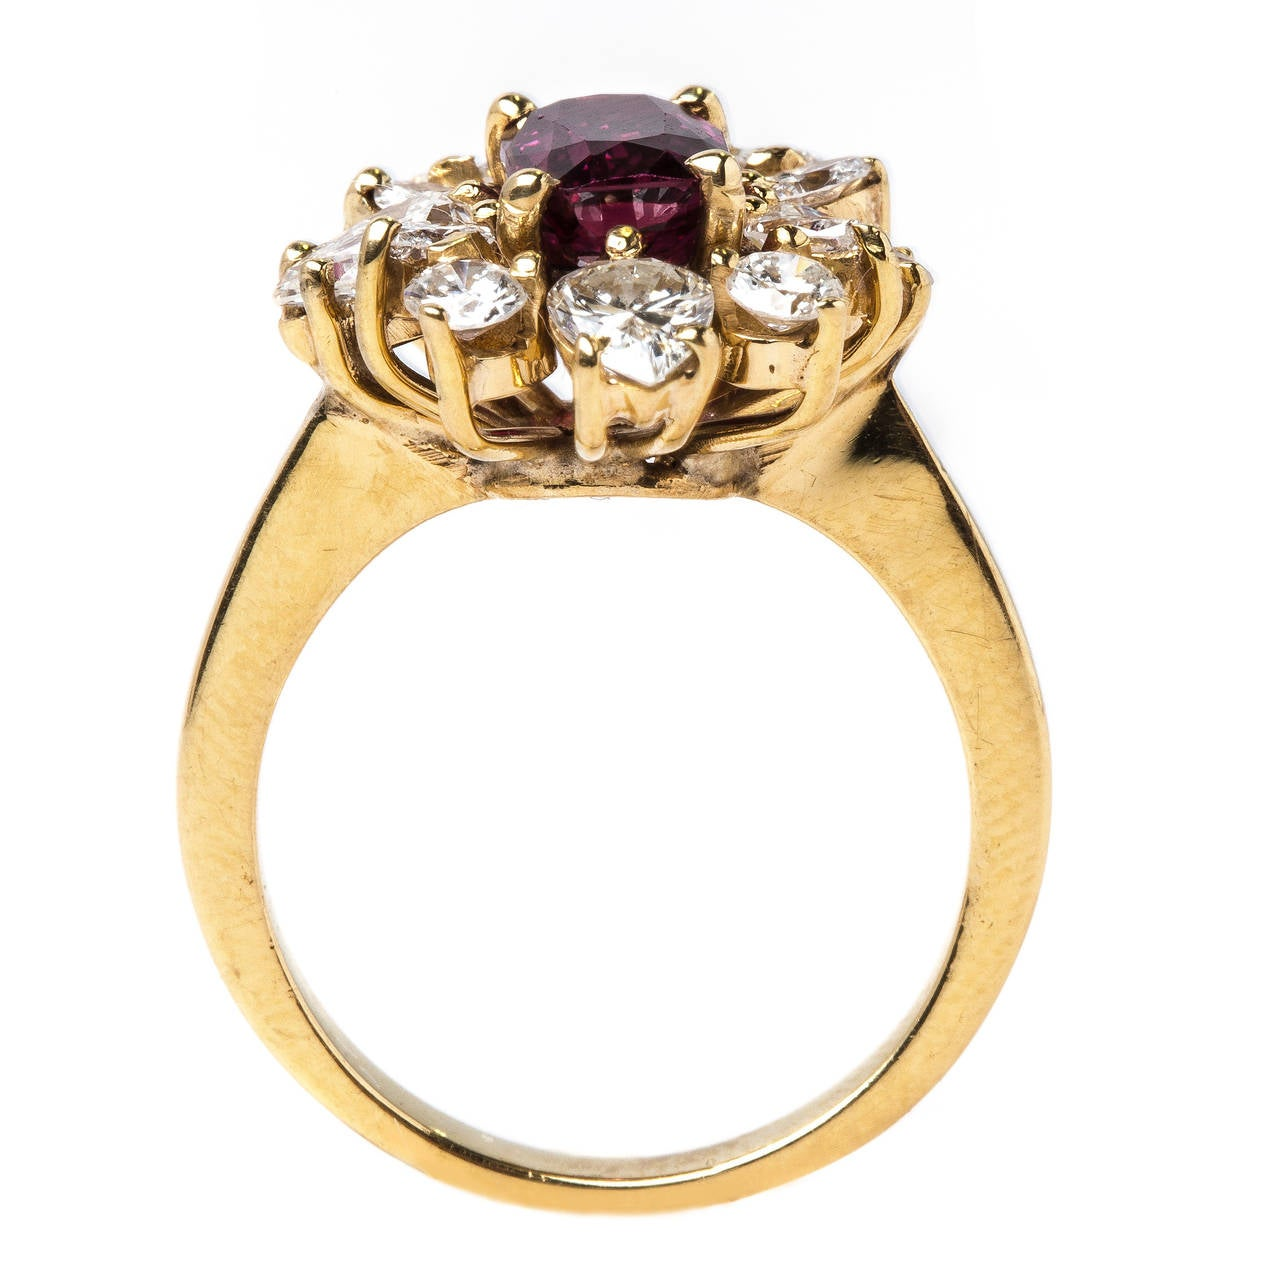 1960s Deep Red Sapphire Diamond Halo Gold Ballerina Ring at 1stdibs